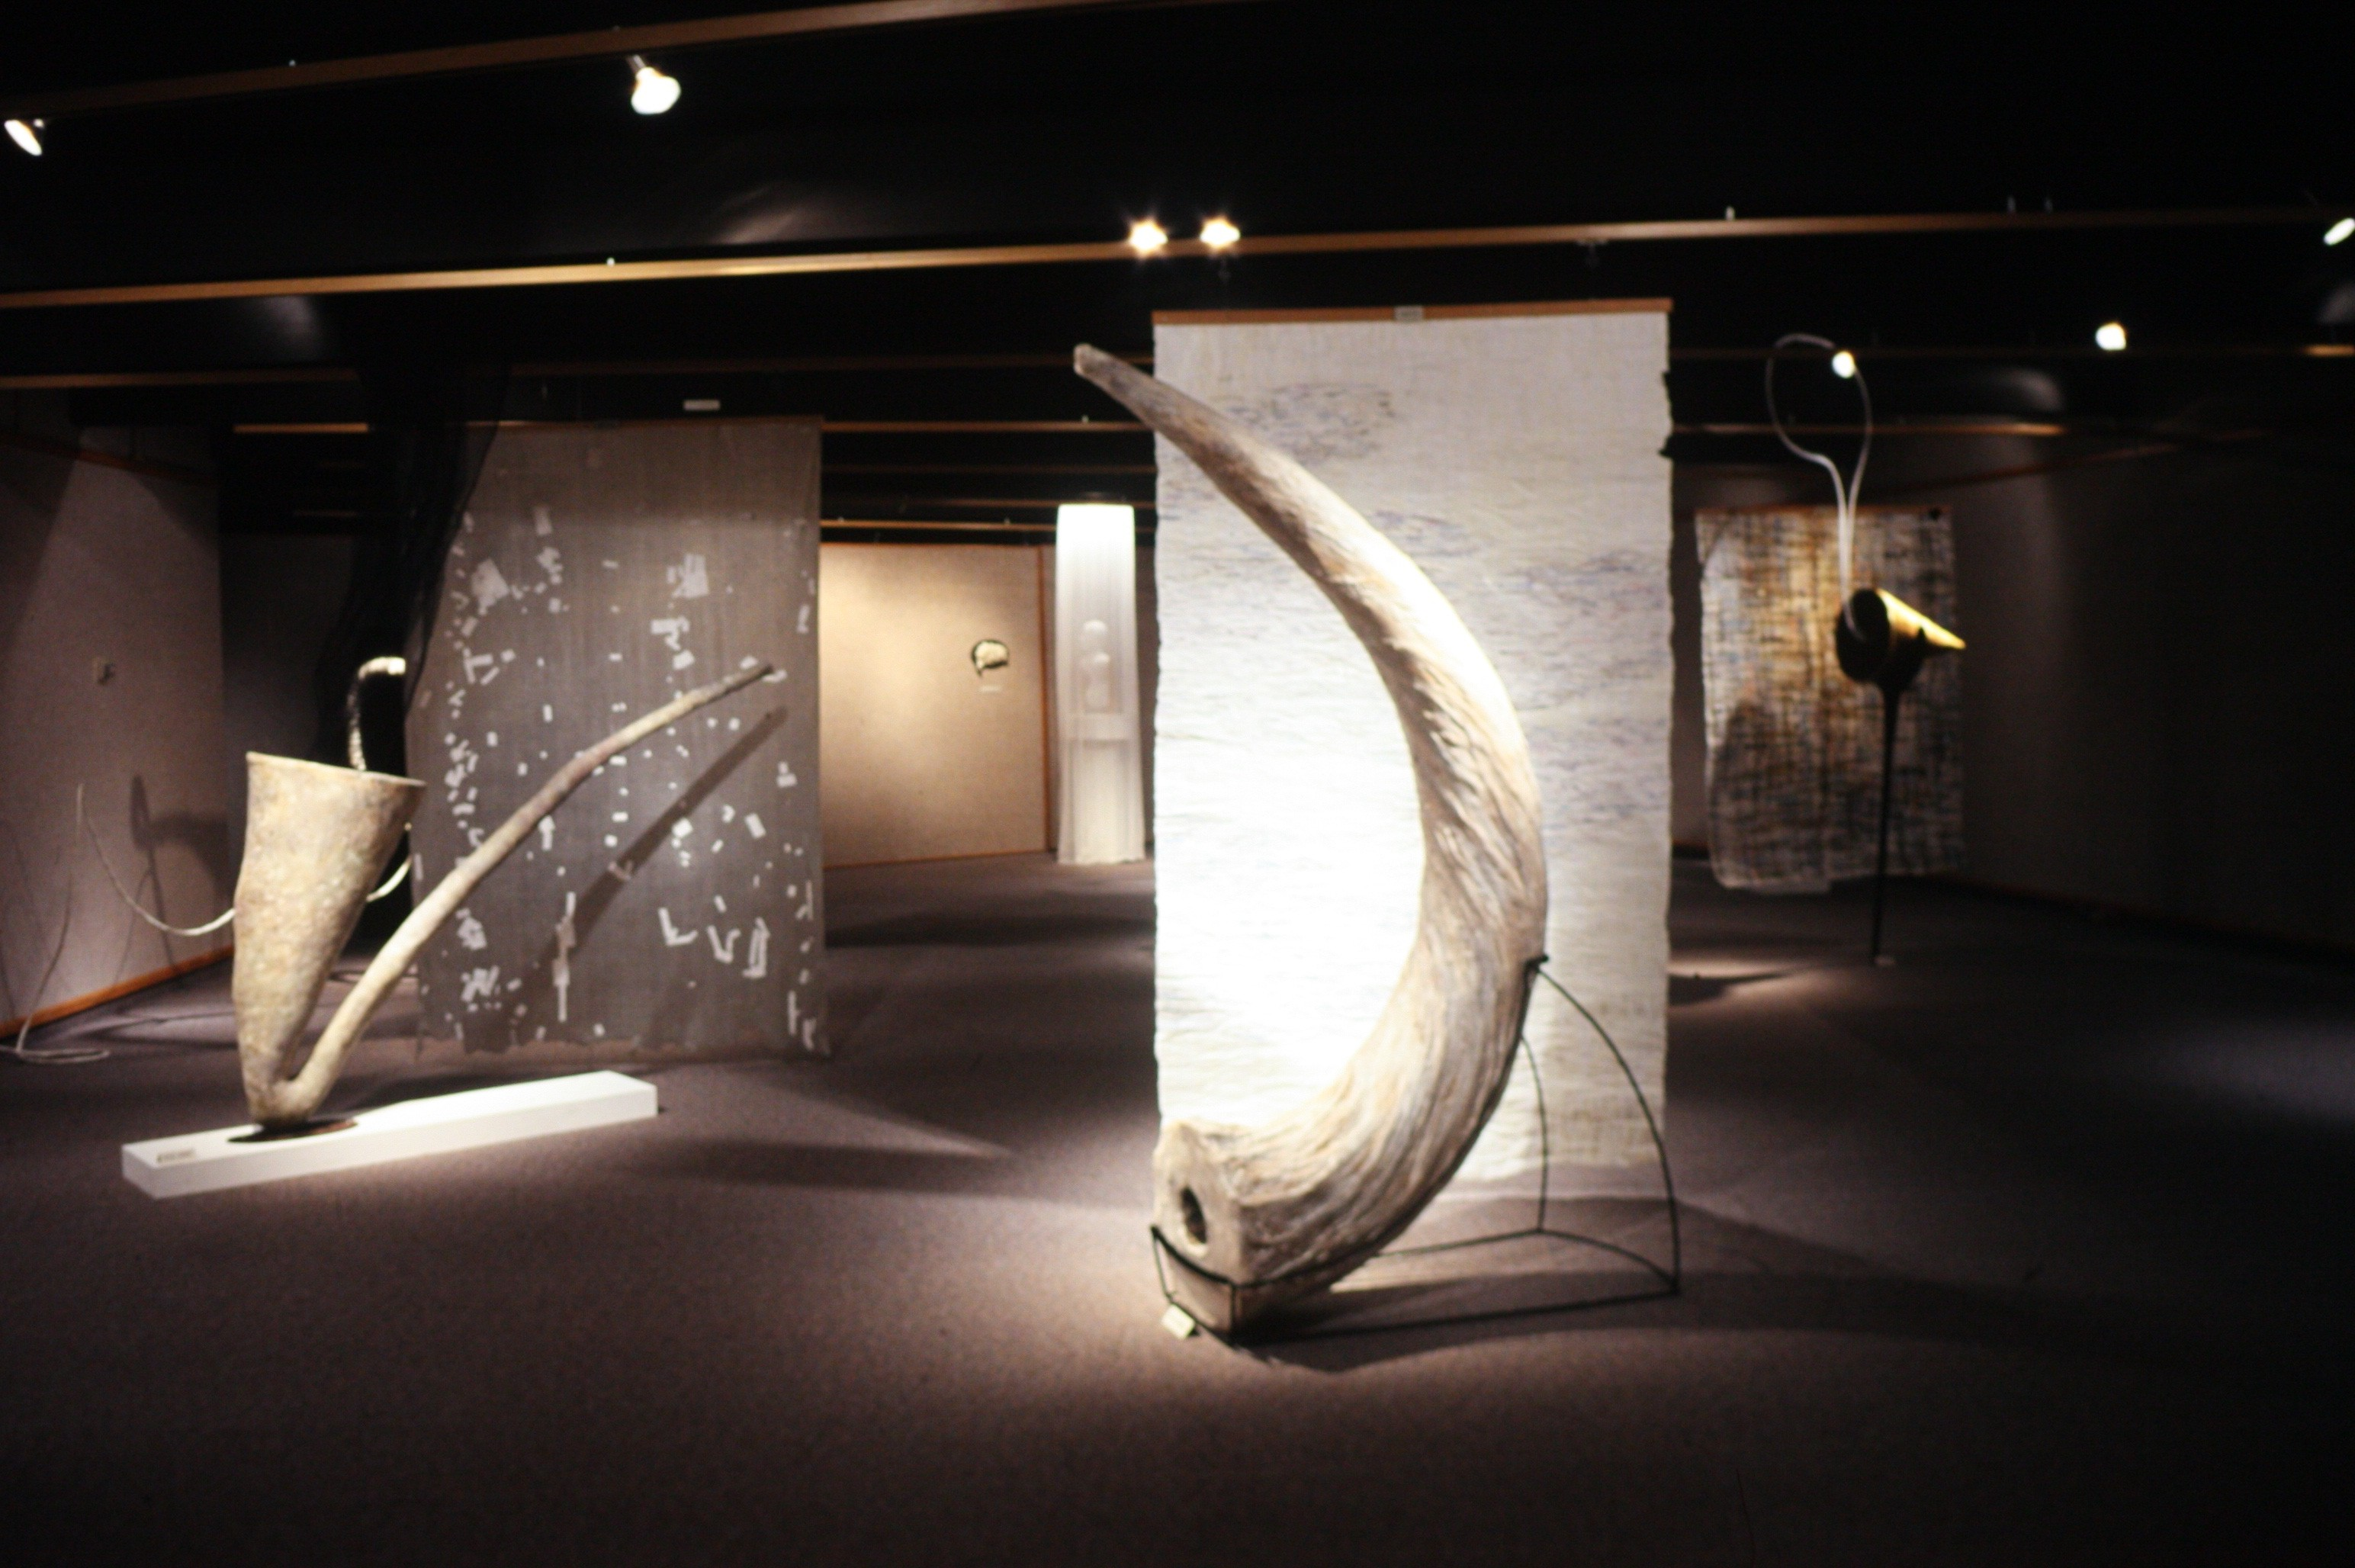 Installation view of 'Big Horn'